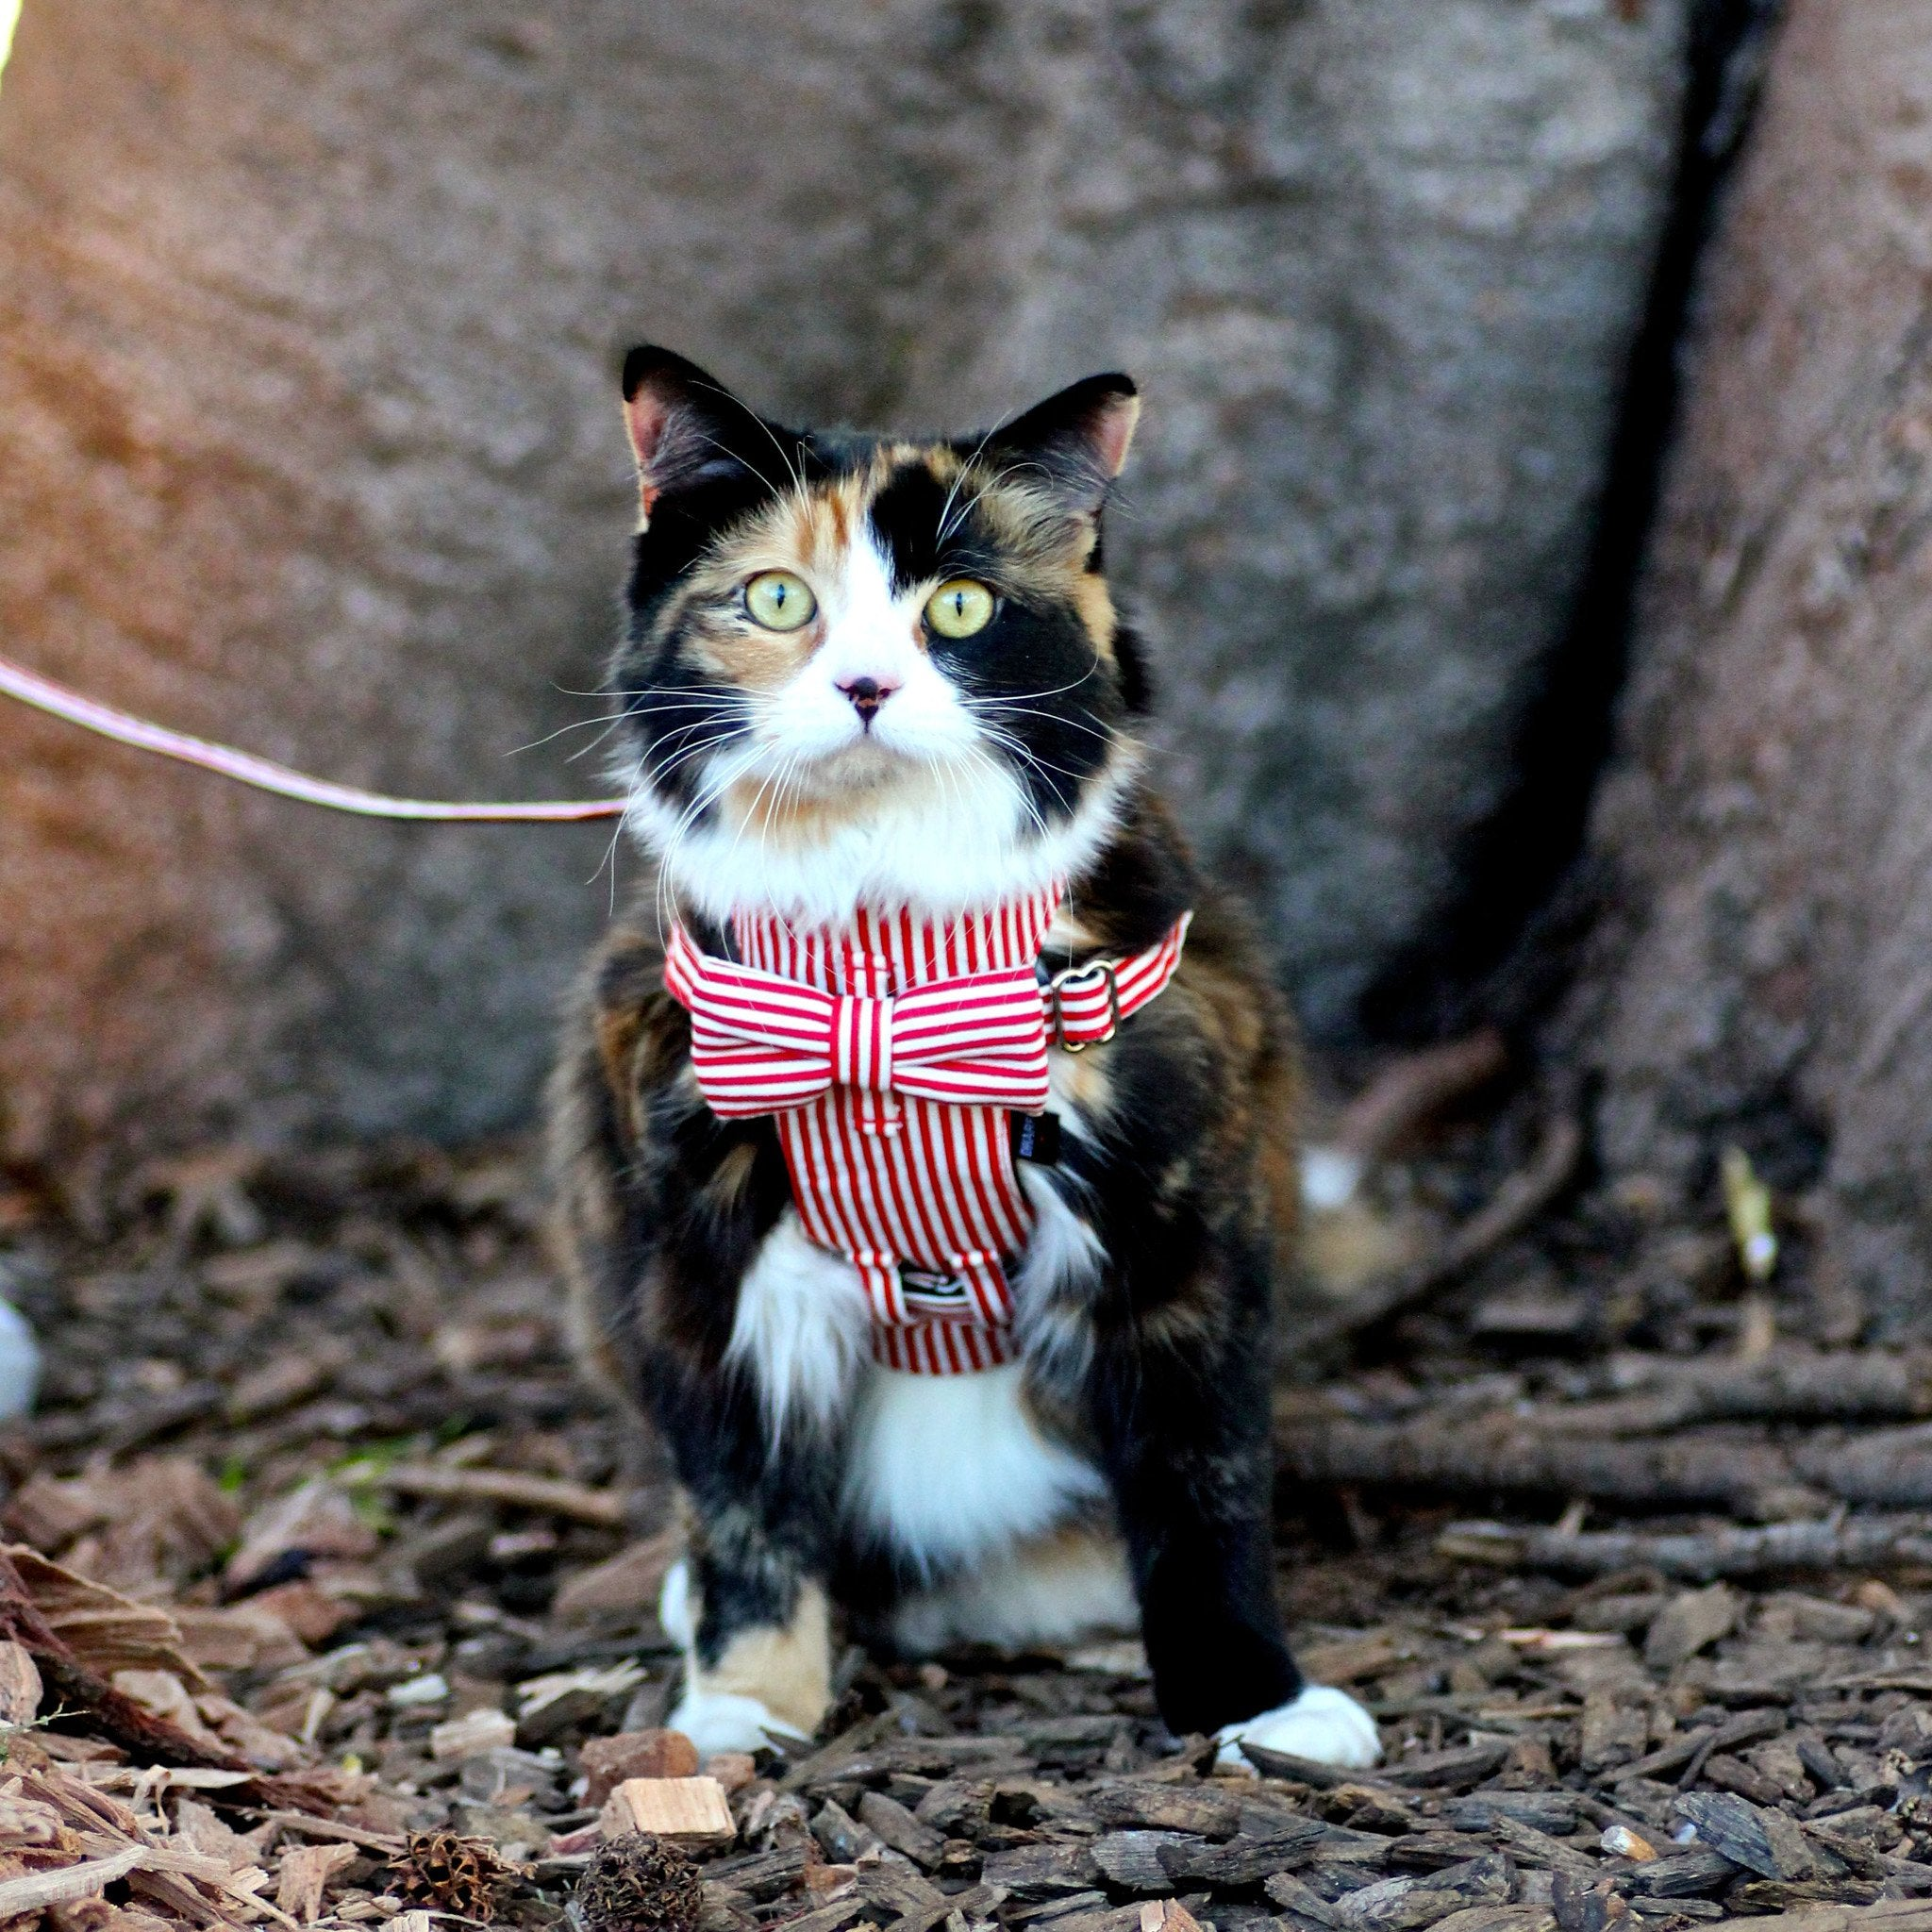 Dharf cat harness and removable bow tie in red and white stripes